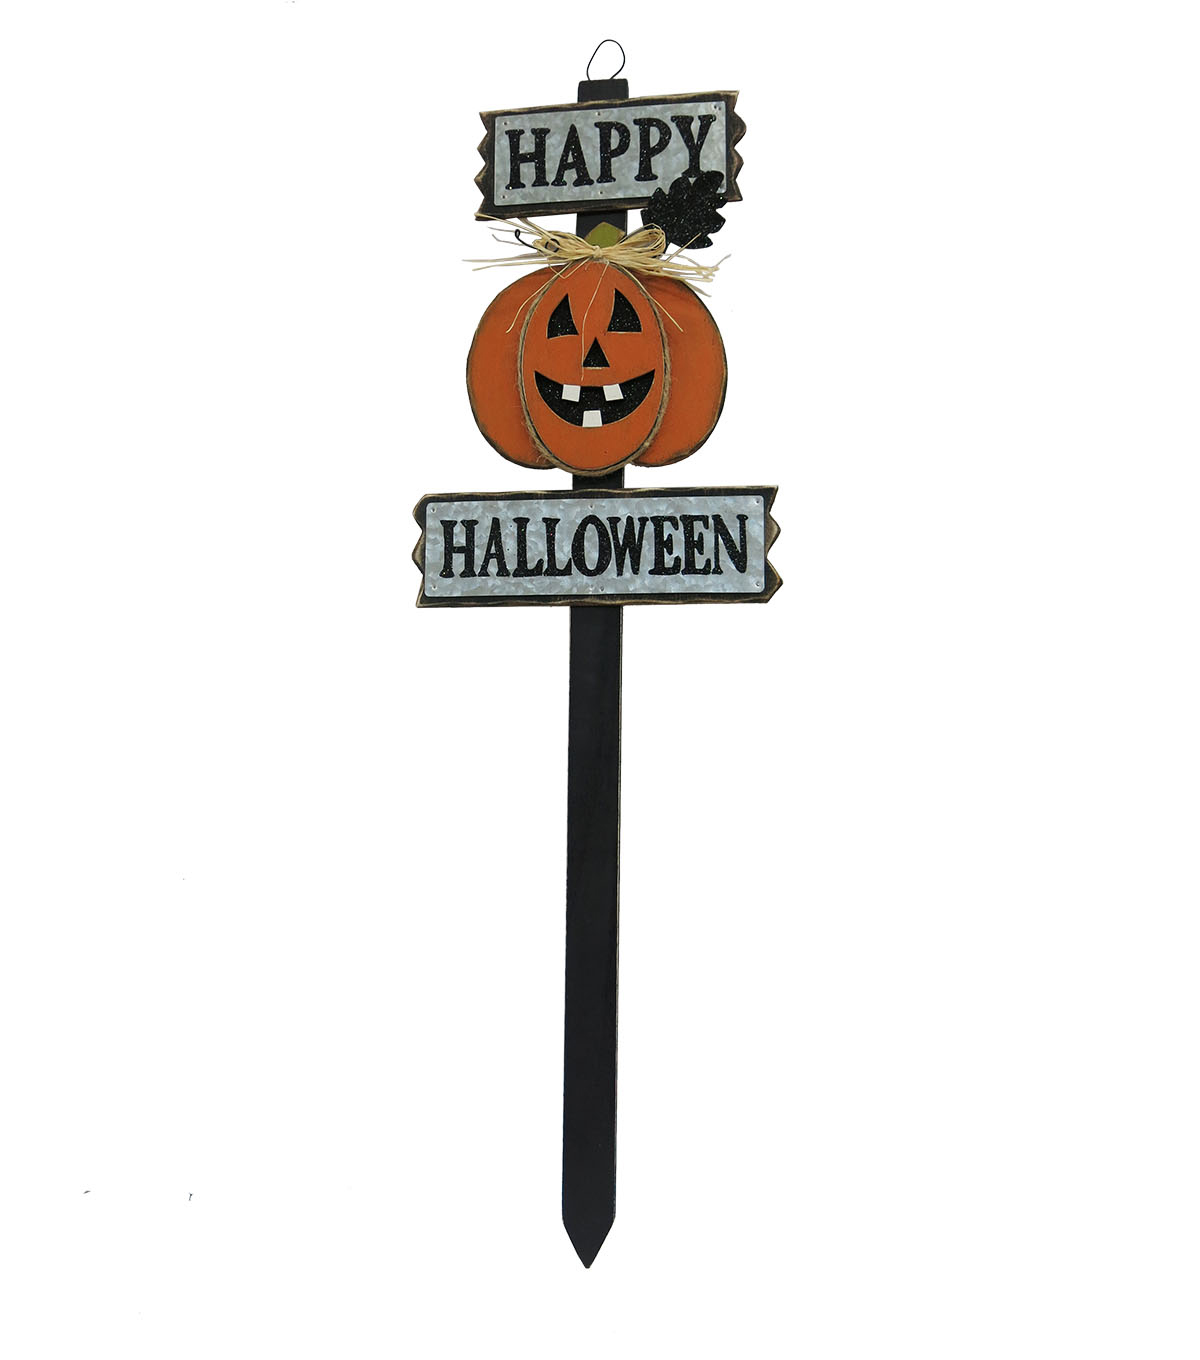 Maker's Halloween Wood Yard Stake-Happy Halloween